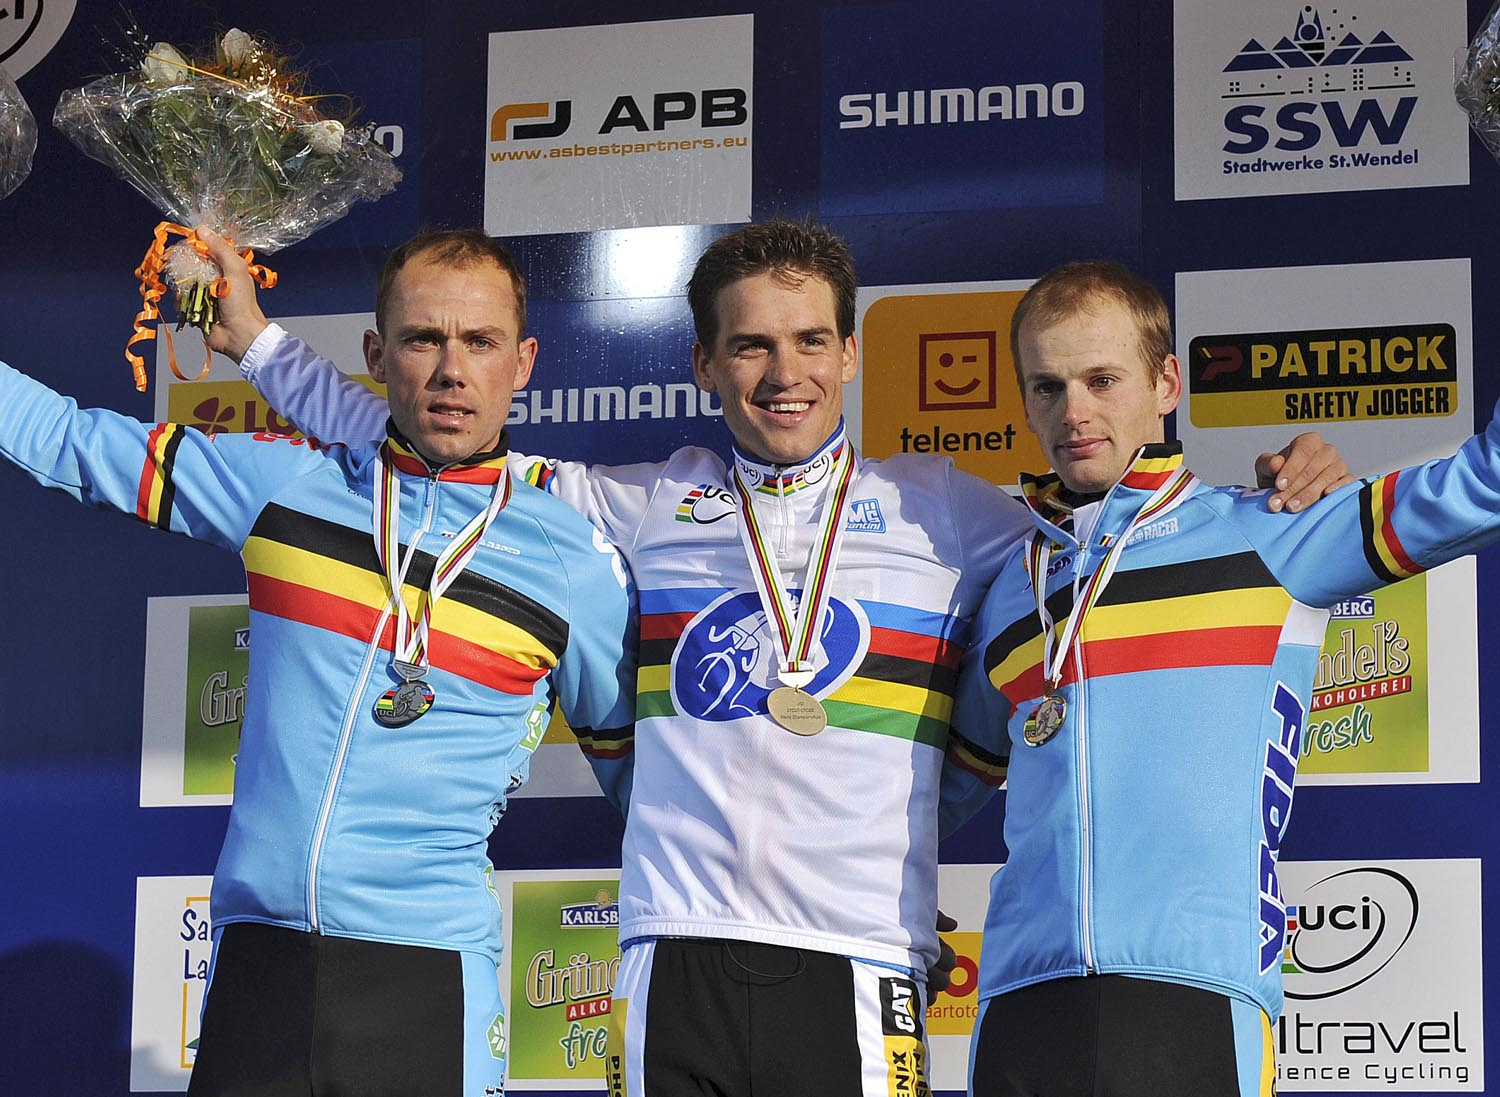 Zdenek Stybar tops elite men